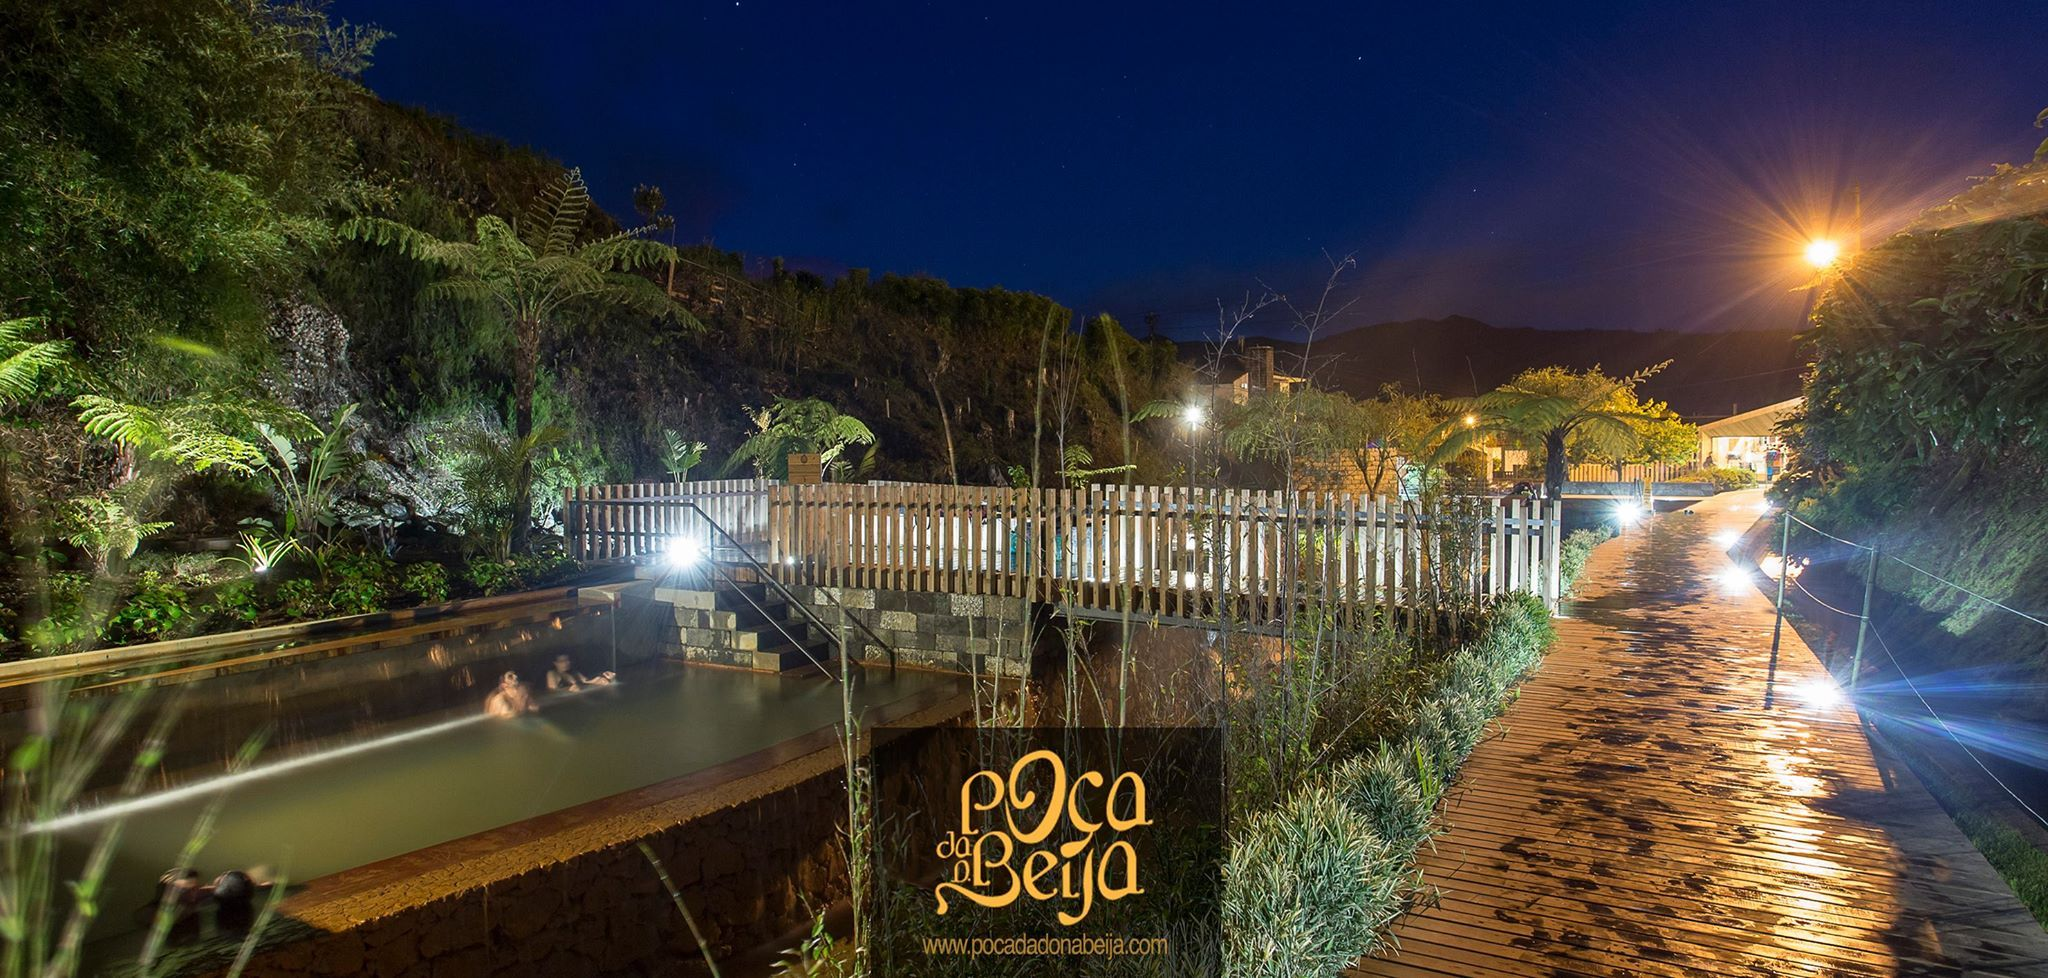 Night time at Poça da Dona Beija #azores #poçadonabeija #thermal #night #pools #piscinastermais #portugal #furnas